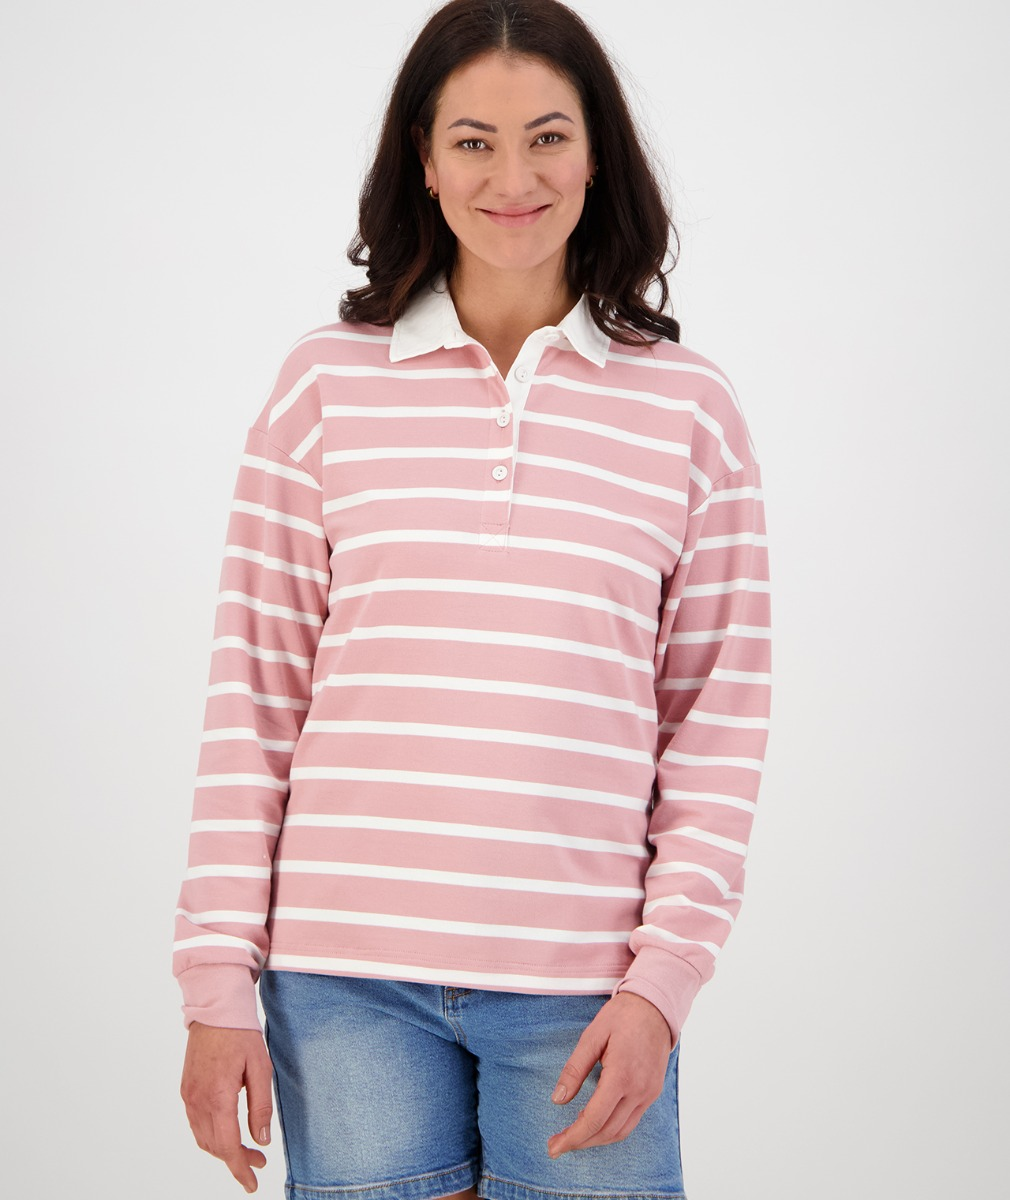 Swanndri Women's Tribeca Long Sleeve Rugby Shirt in Pink/White